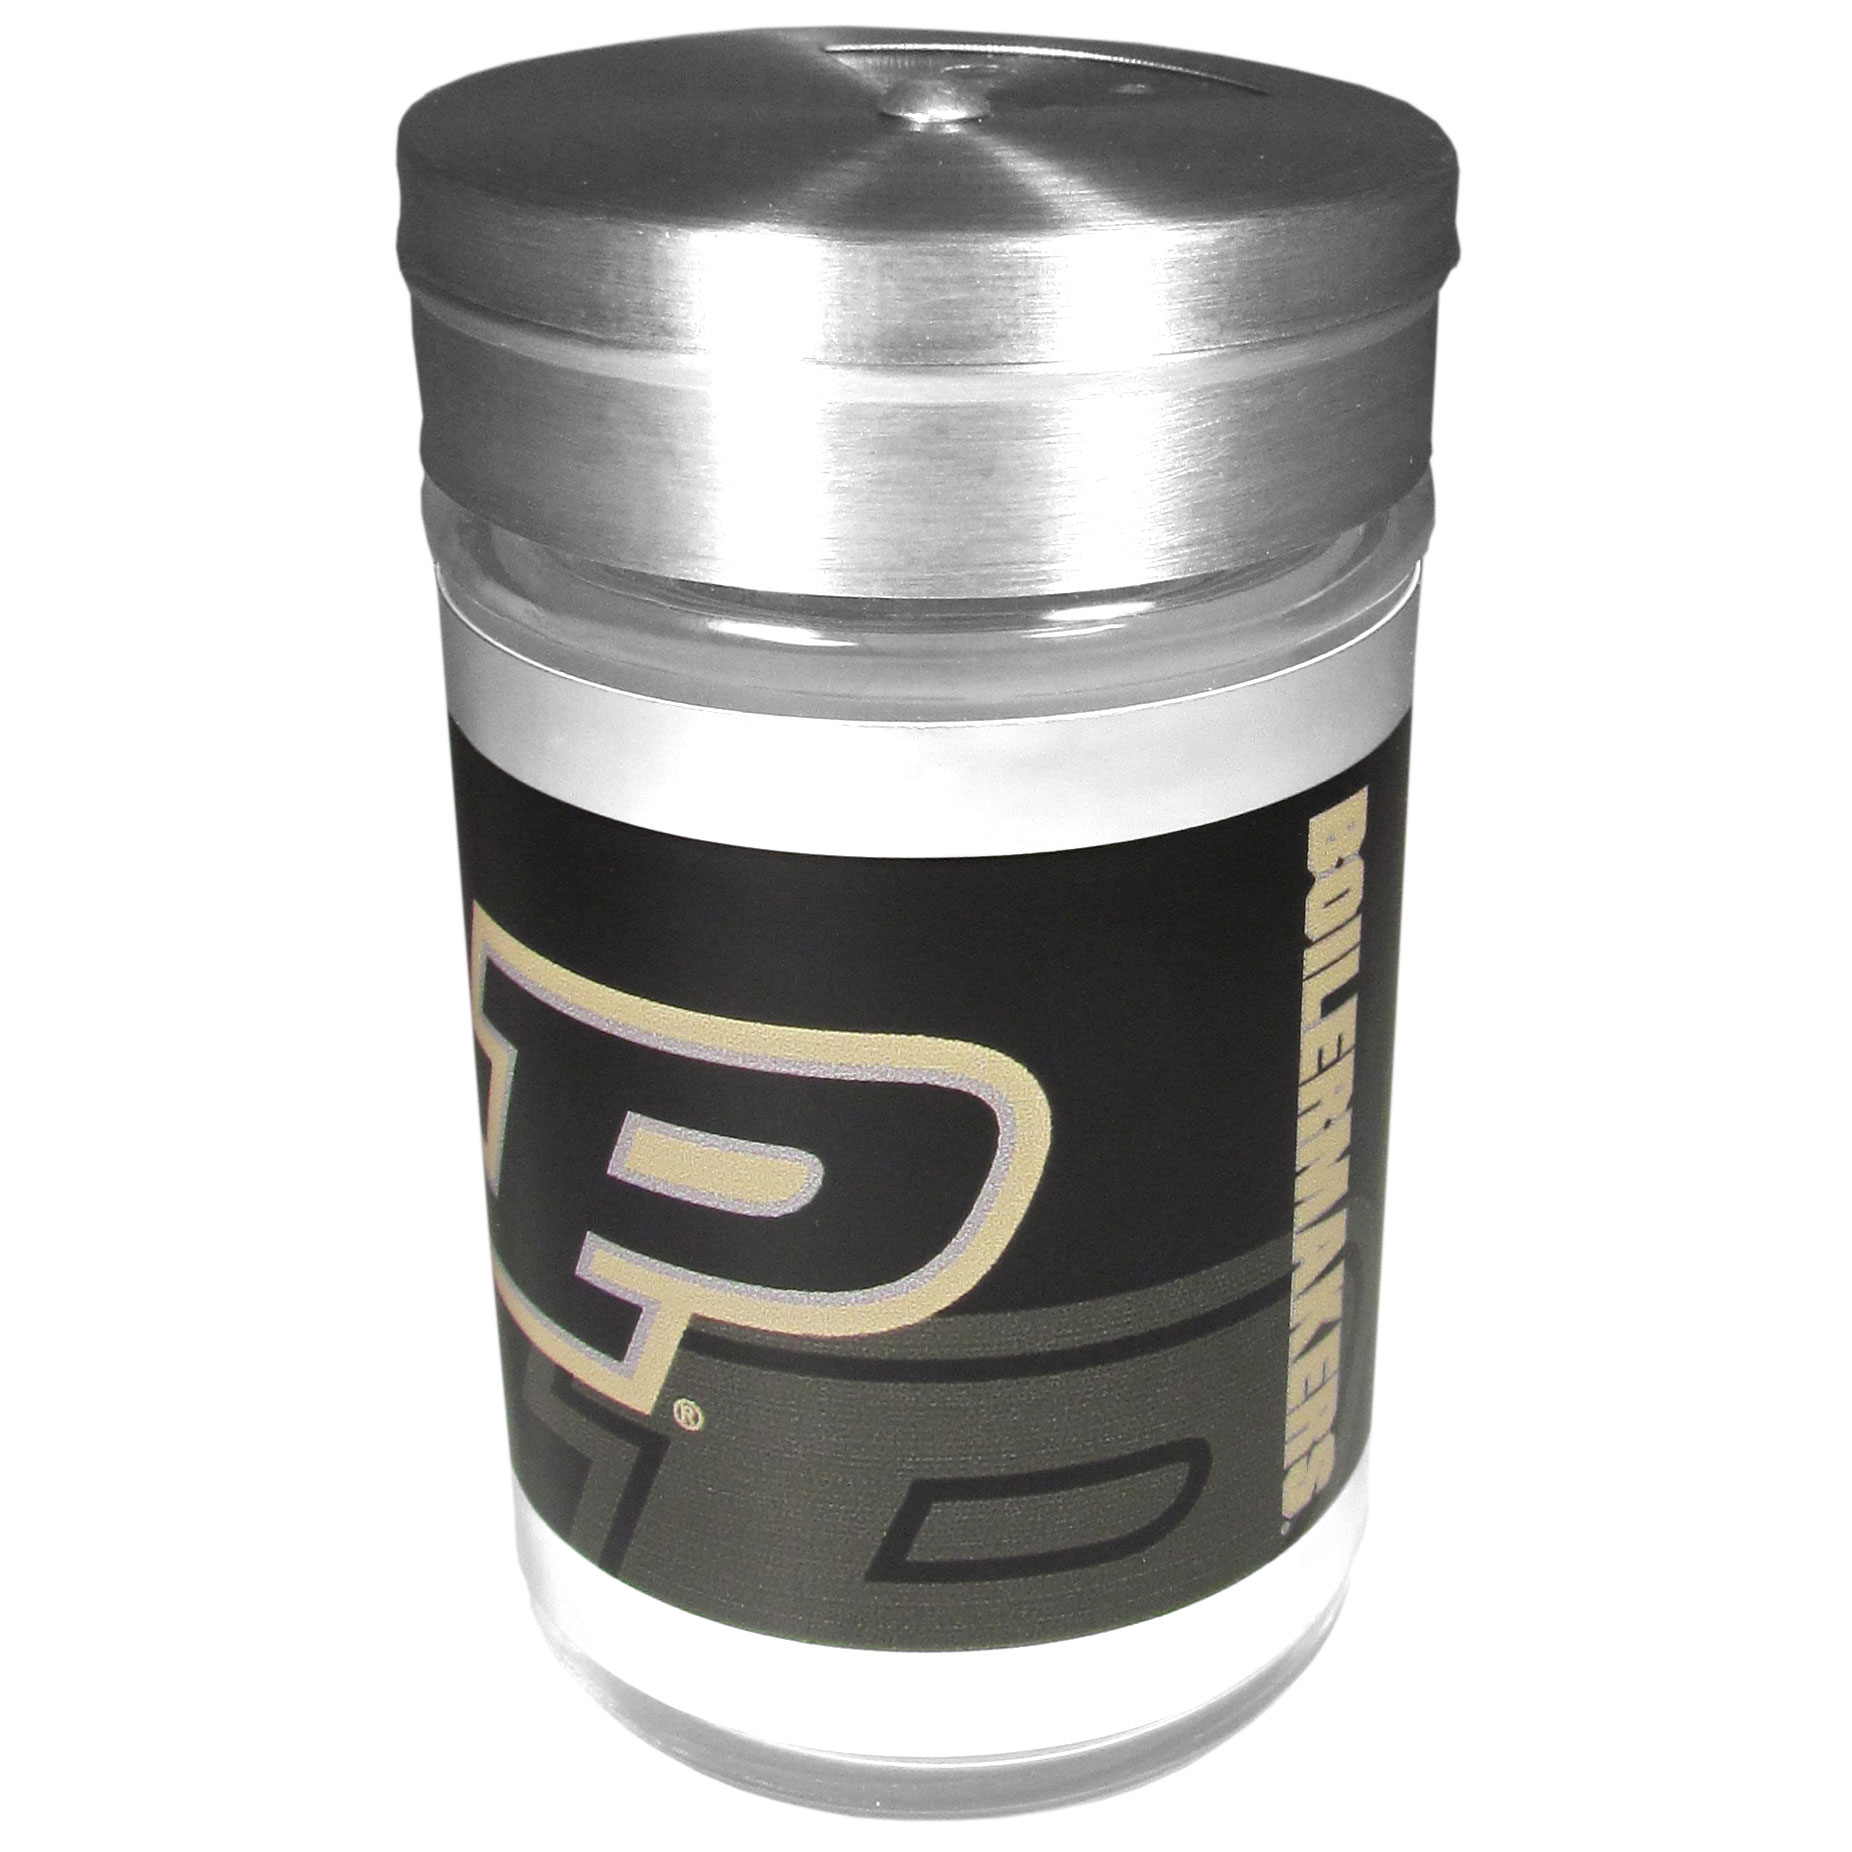 Purdue Boilermakers Tailgater Season Shakers - Spice it up with our Purdue Boilermakers tailgater season shakers! This compact shaker is 2 inch tall with a twist top that closes off the holes at the top making it perfect for travel preventing those messy spills. The shaker has wide holes perfect for keeping your pepper seeds or cheese toppings. The bright team graphics will make you the envy of the other fans while you are grilling up your tailgating goodies.